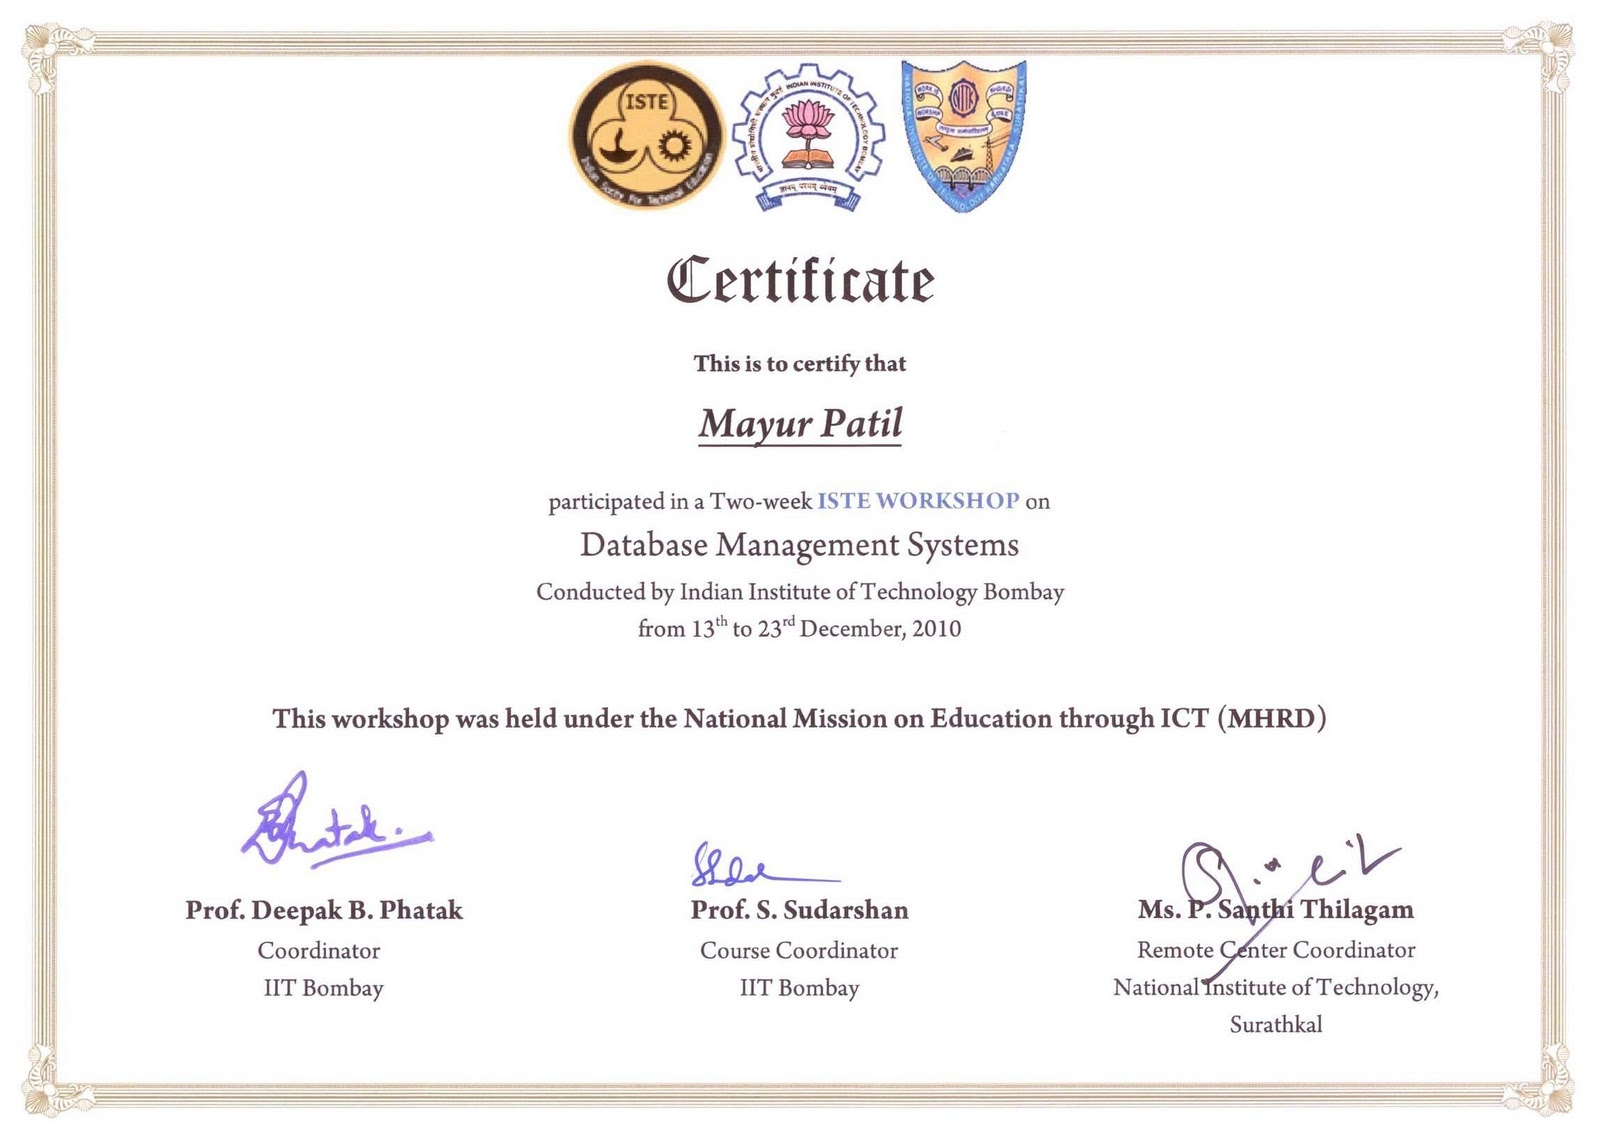 Attended 2 Week ISTE Workshop on DBMS Conducted by IIT Bombay | ॐ ...